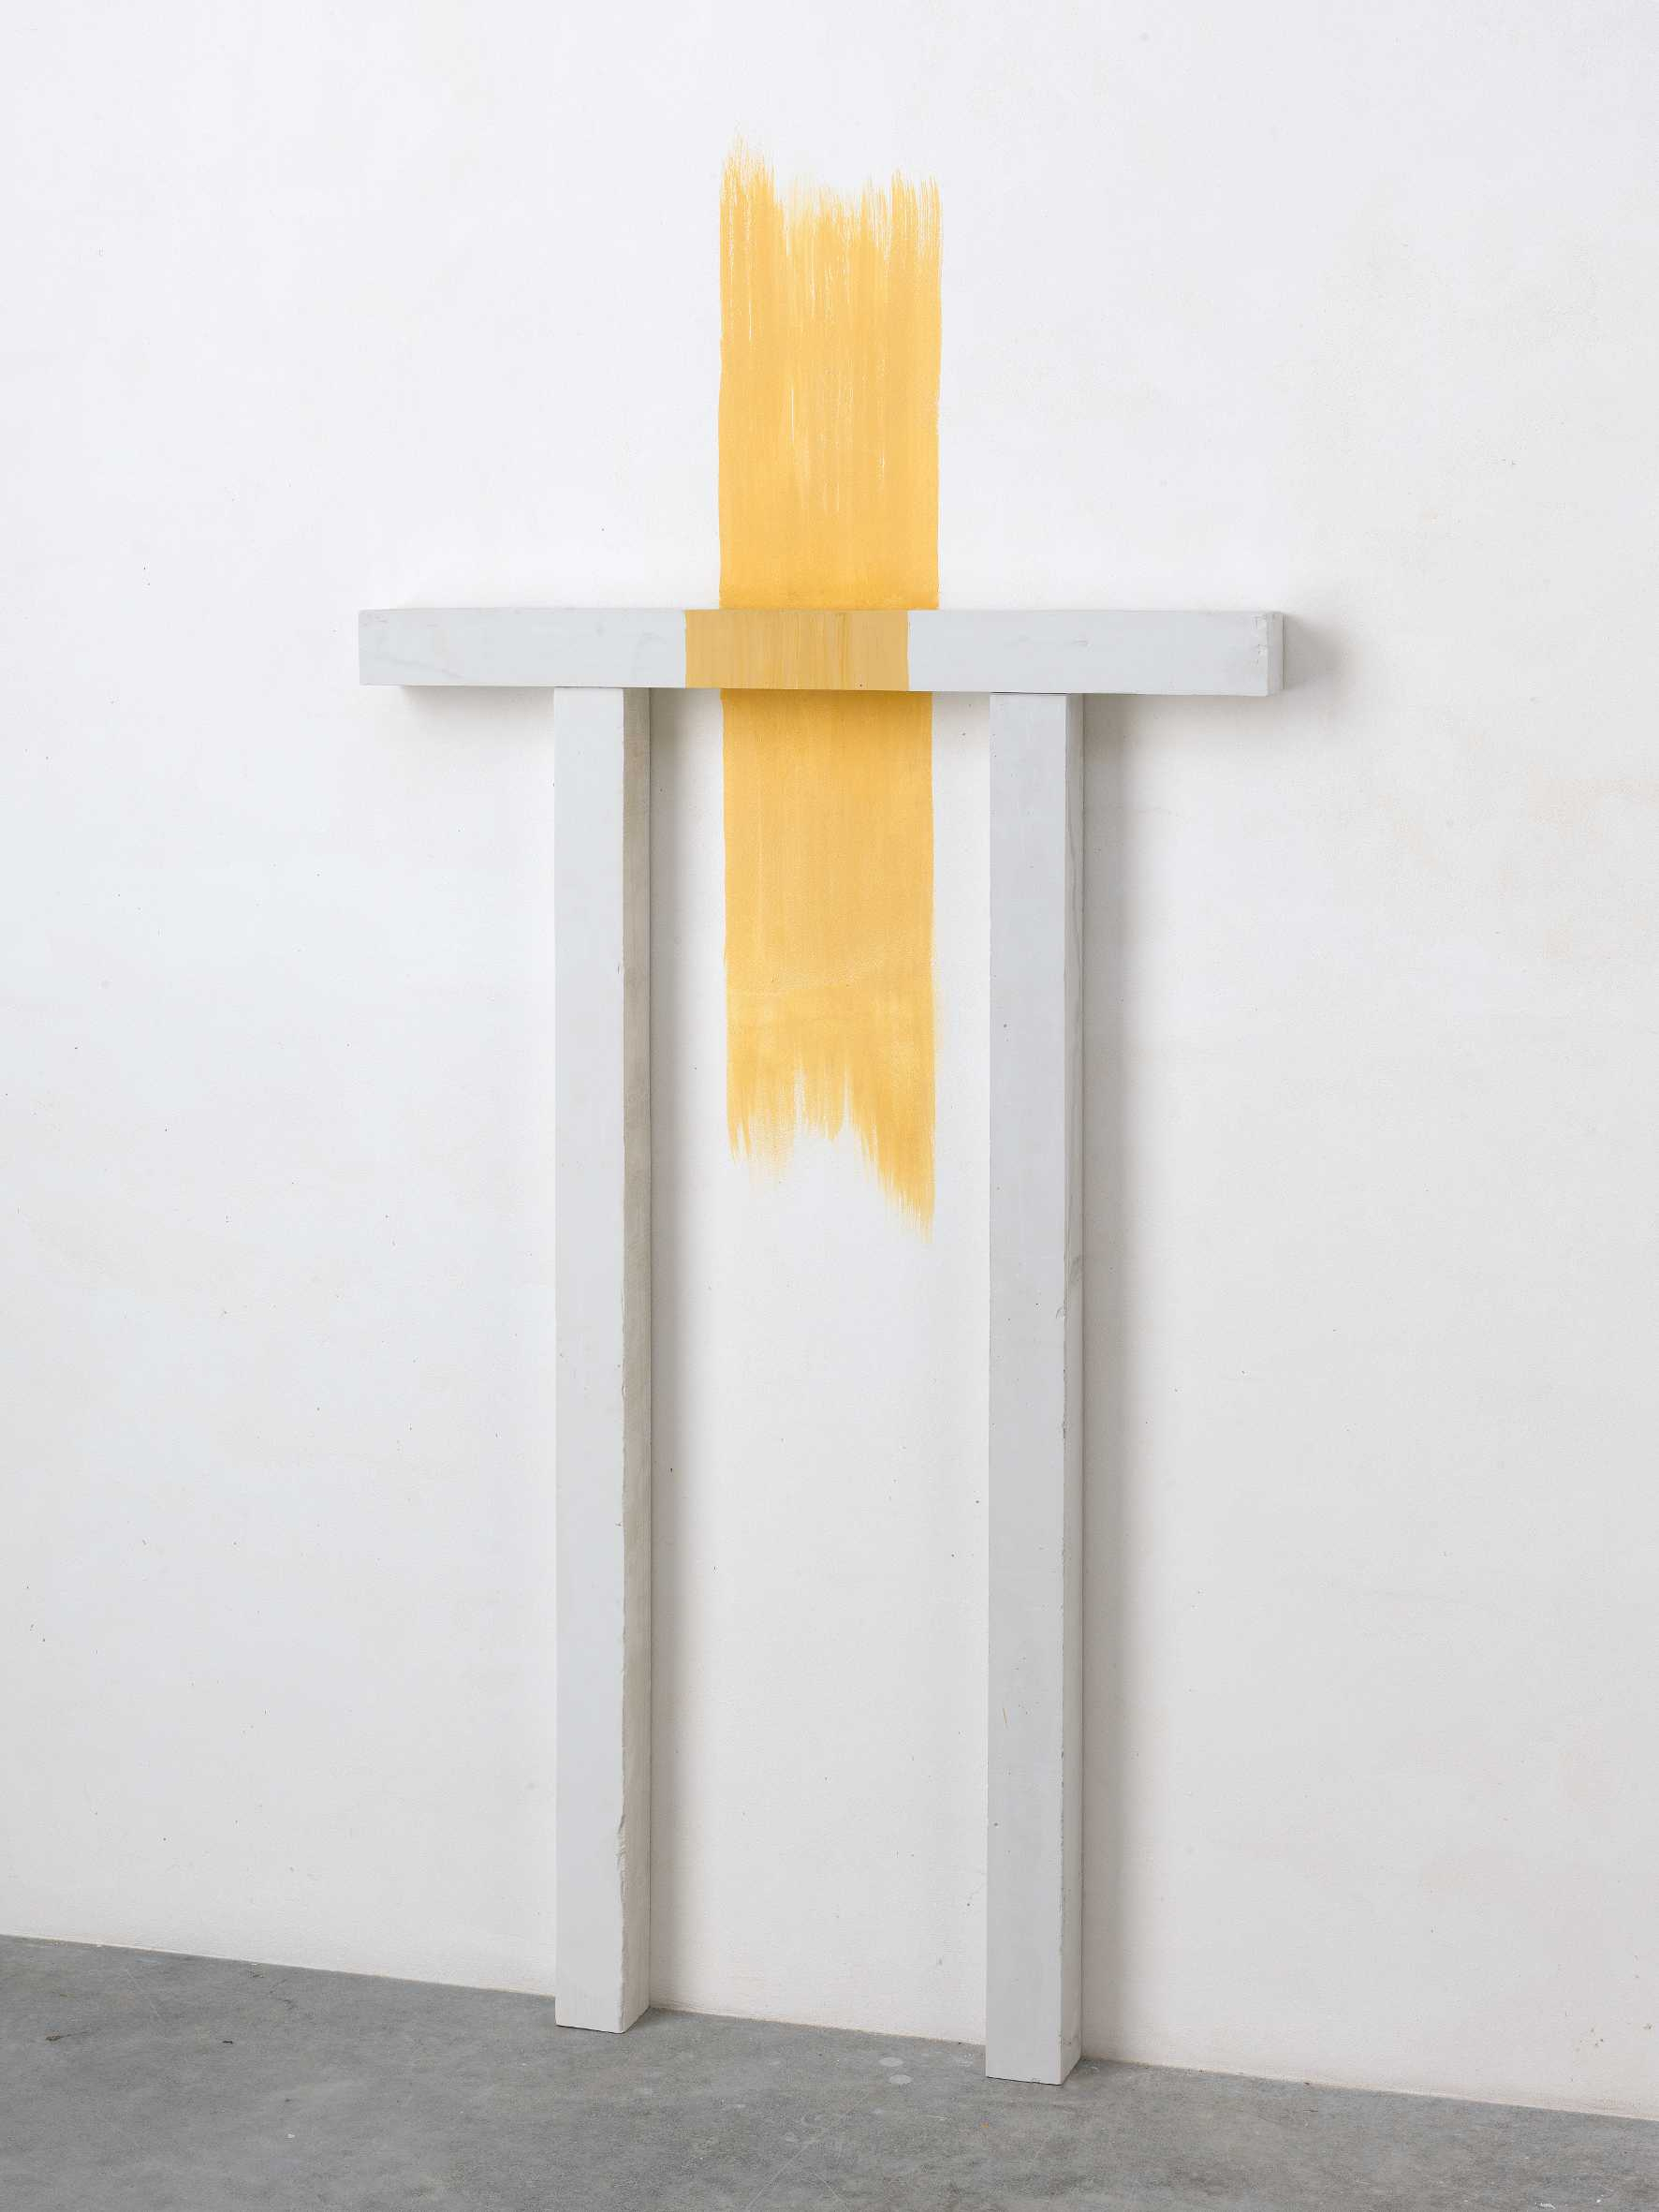 Paolo Icaro - Yellow Site - 1980 - courtesy Studio G7, Bologna